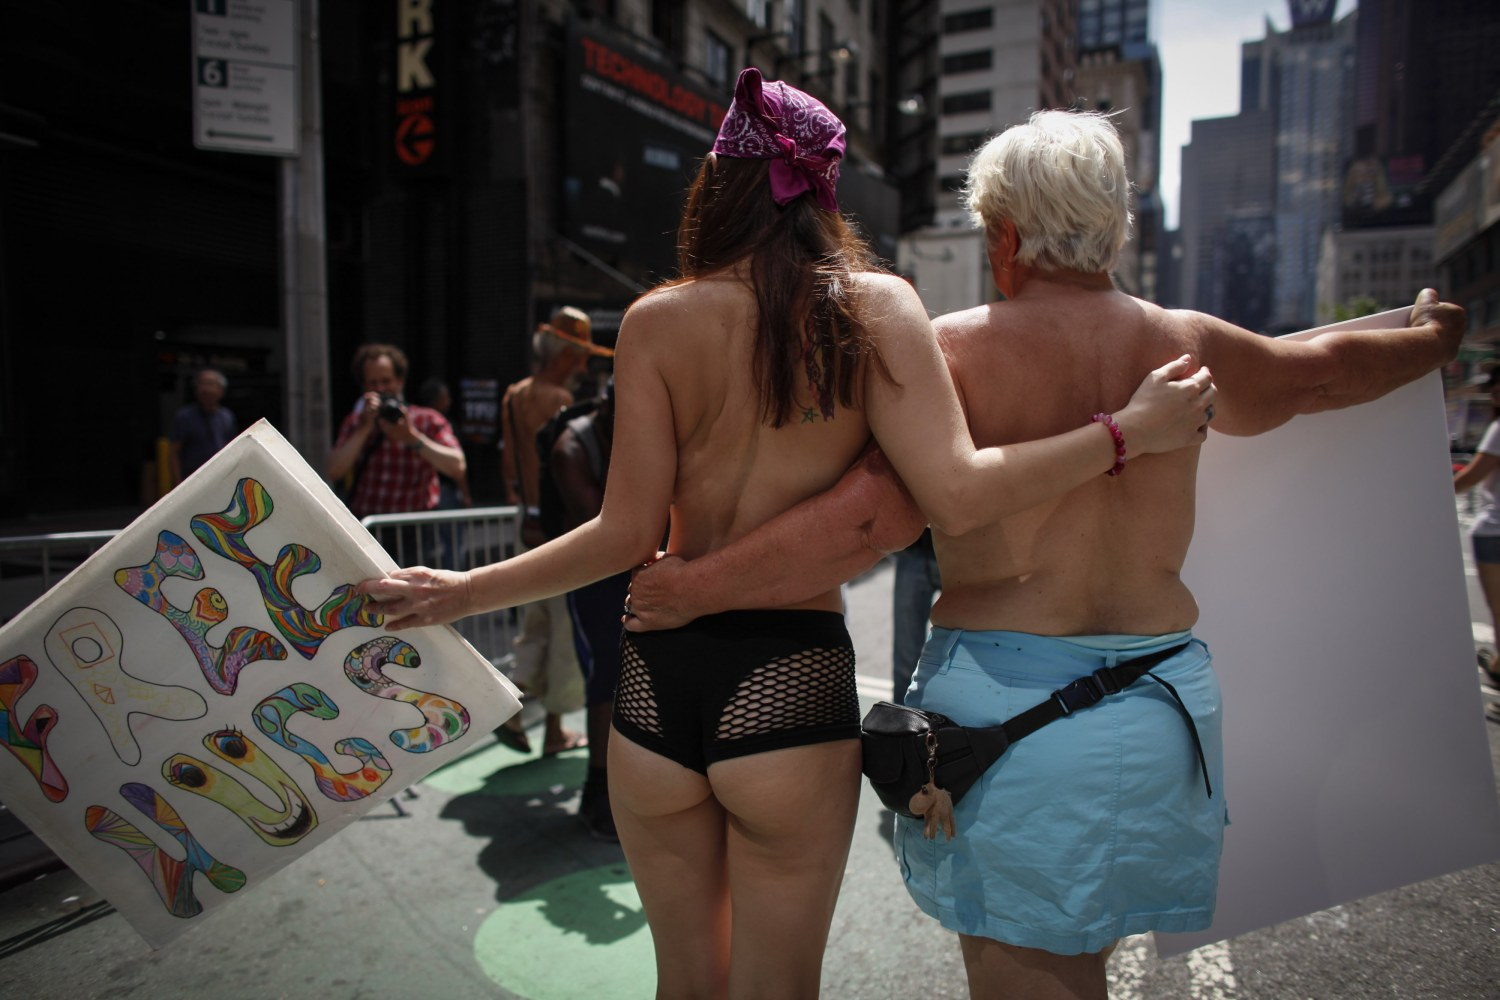 women topless in front of man